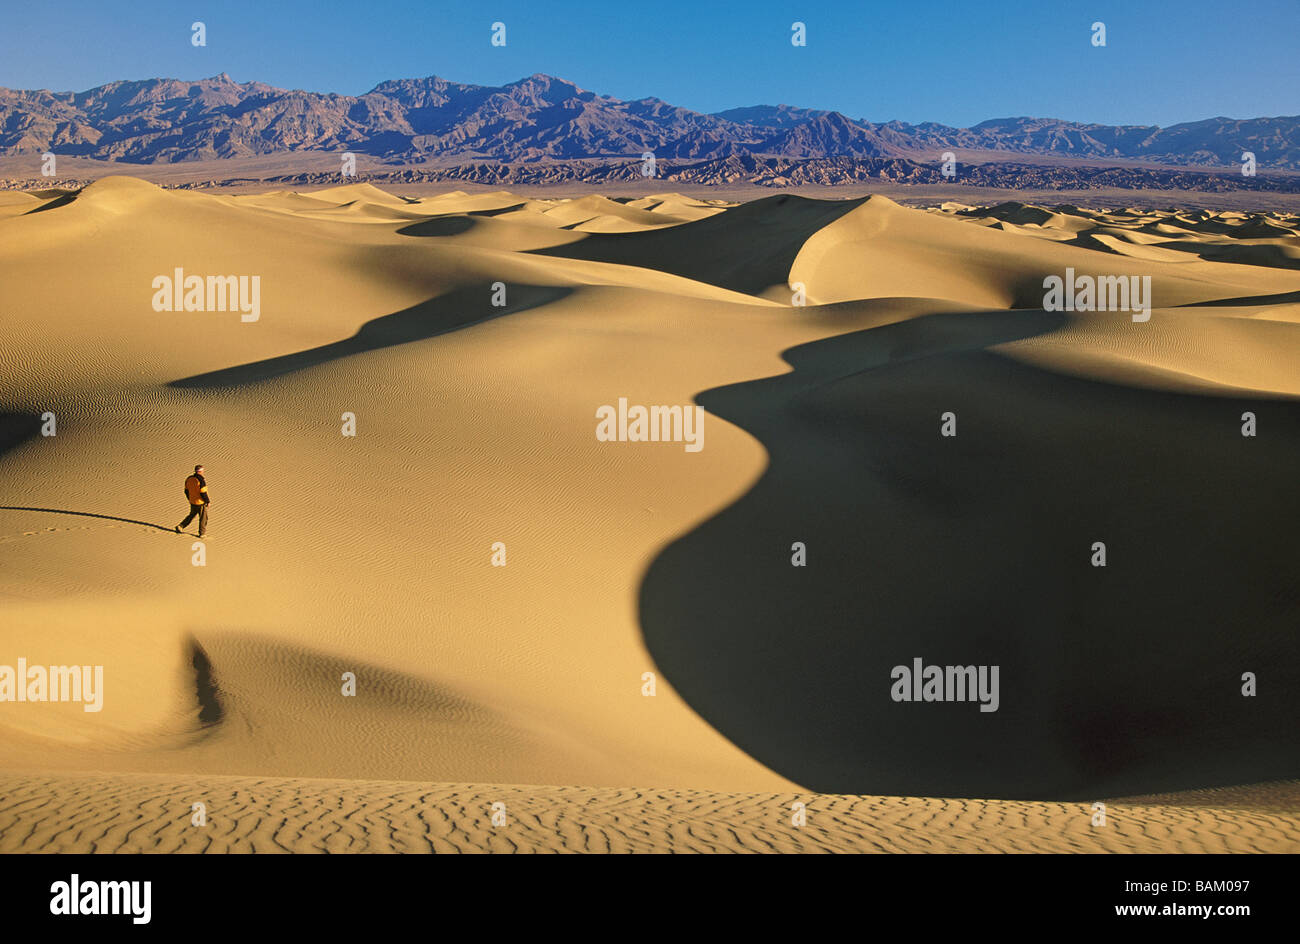 Hiker on mesquite sand dunes - Stock Image